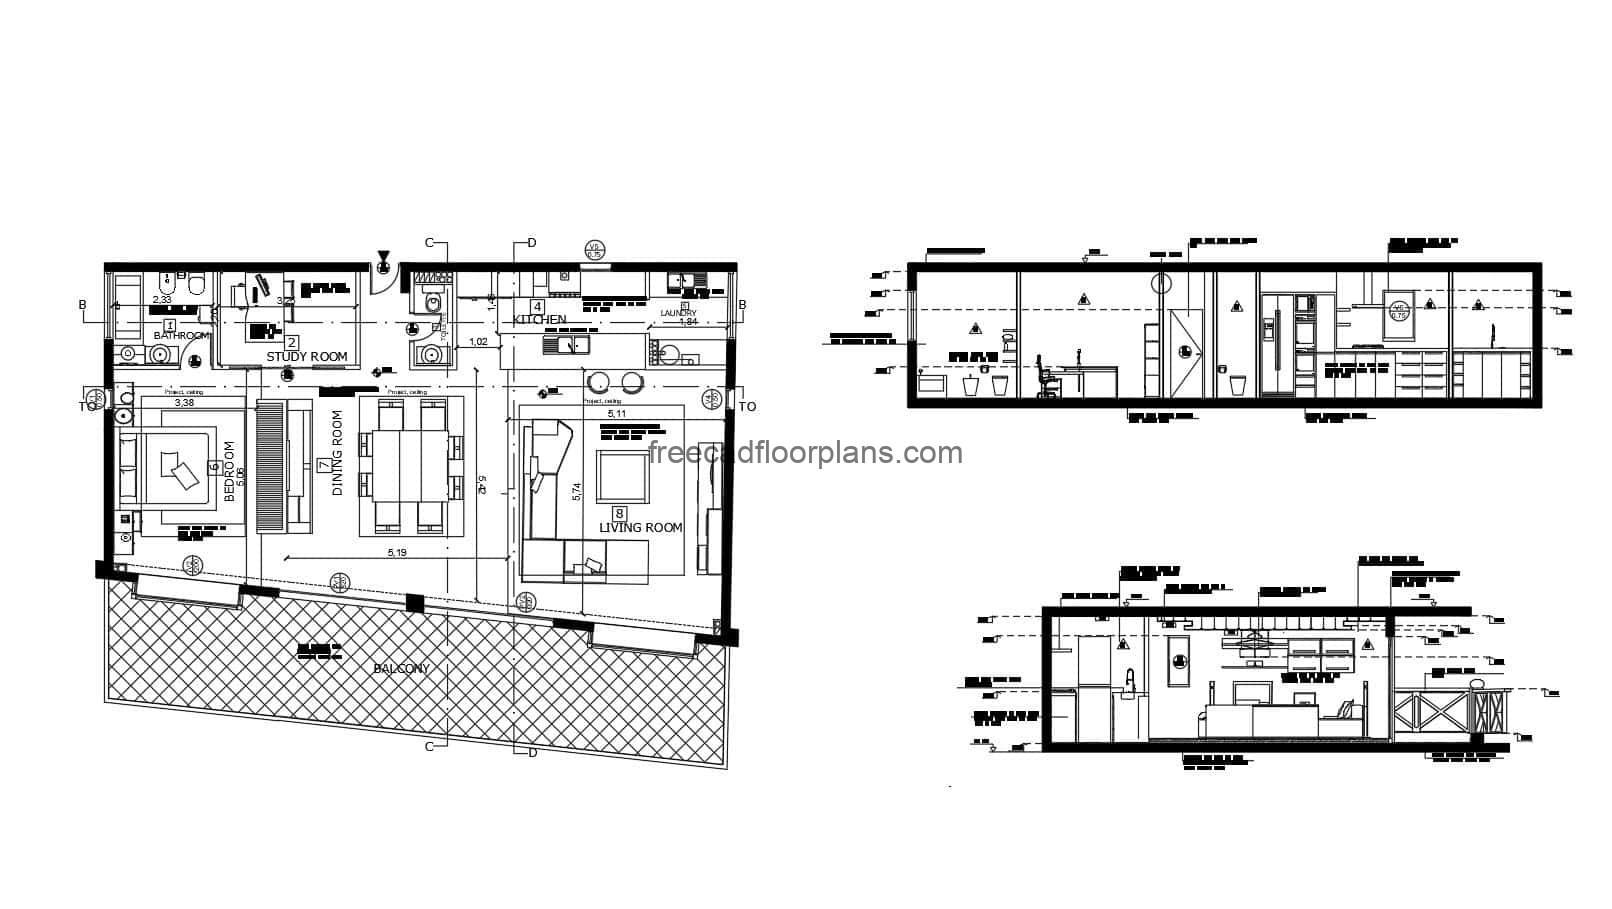 2D plan in DWG format of loft in one bedroom apartment with large front terrace, living room, dining area, kitchen with breakfast area and study room. The plan has elevations and sections with details of interior materials. CAD project for free download in 2D DWG format